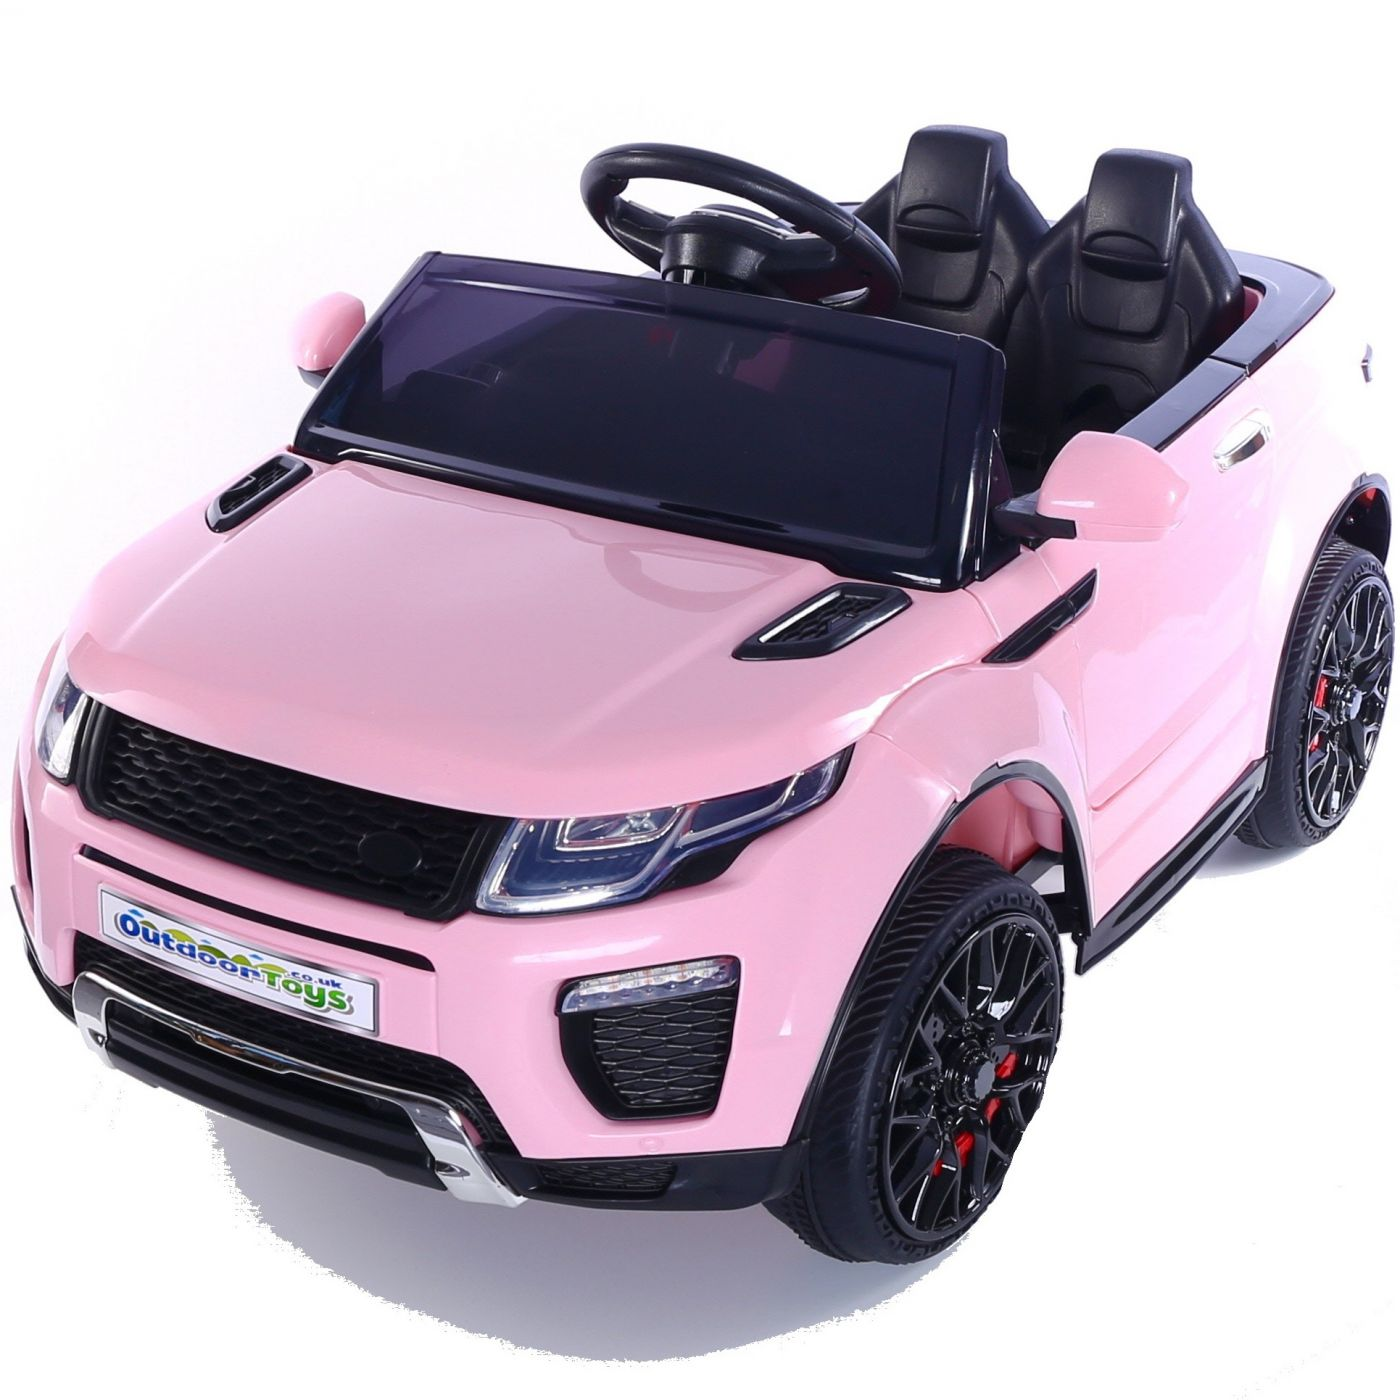 1c946667e32 Range Rover Evoque Style 12v Child s Ride On Car - Pink For Just ...